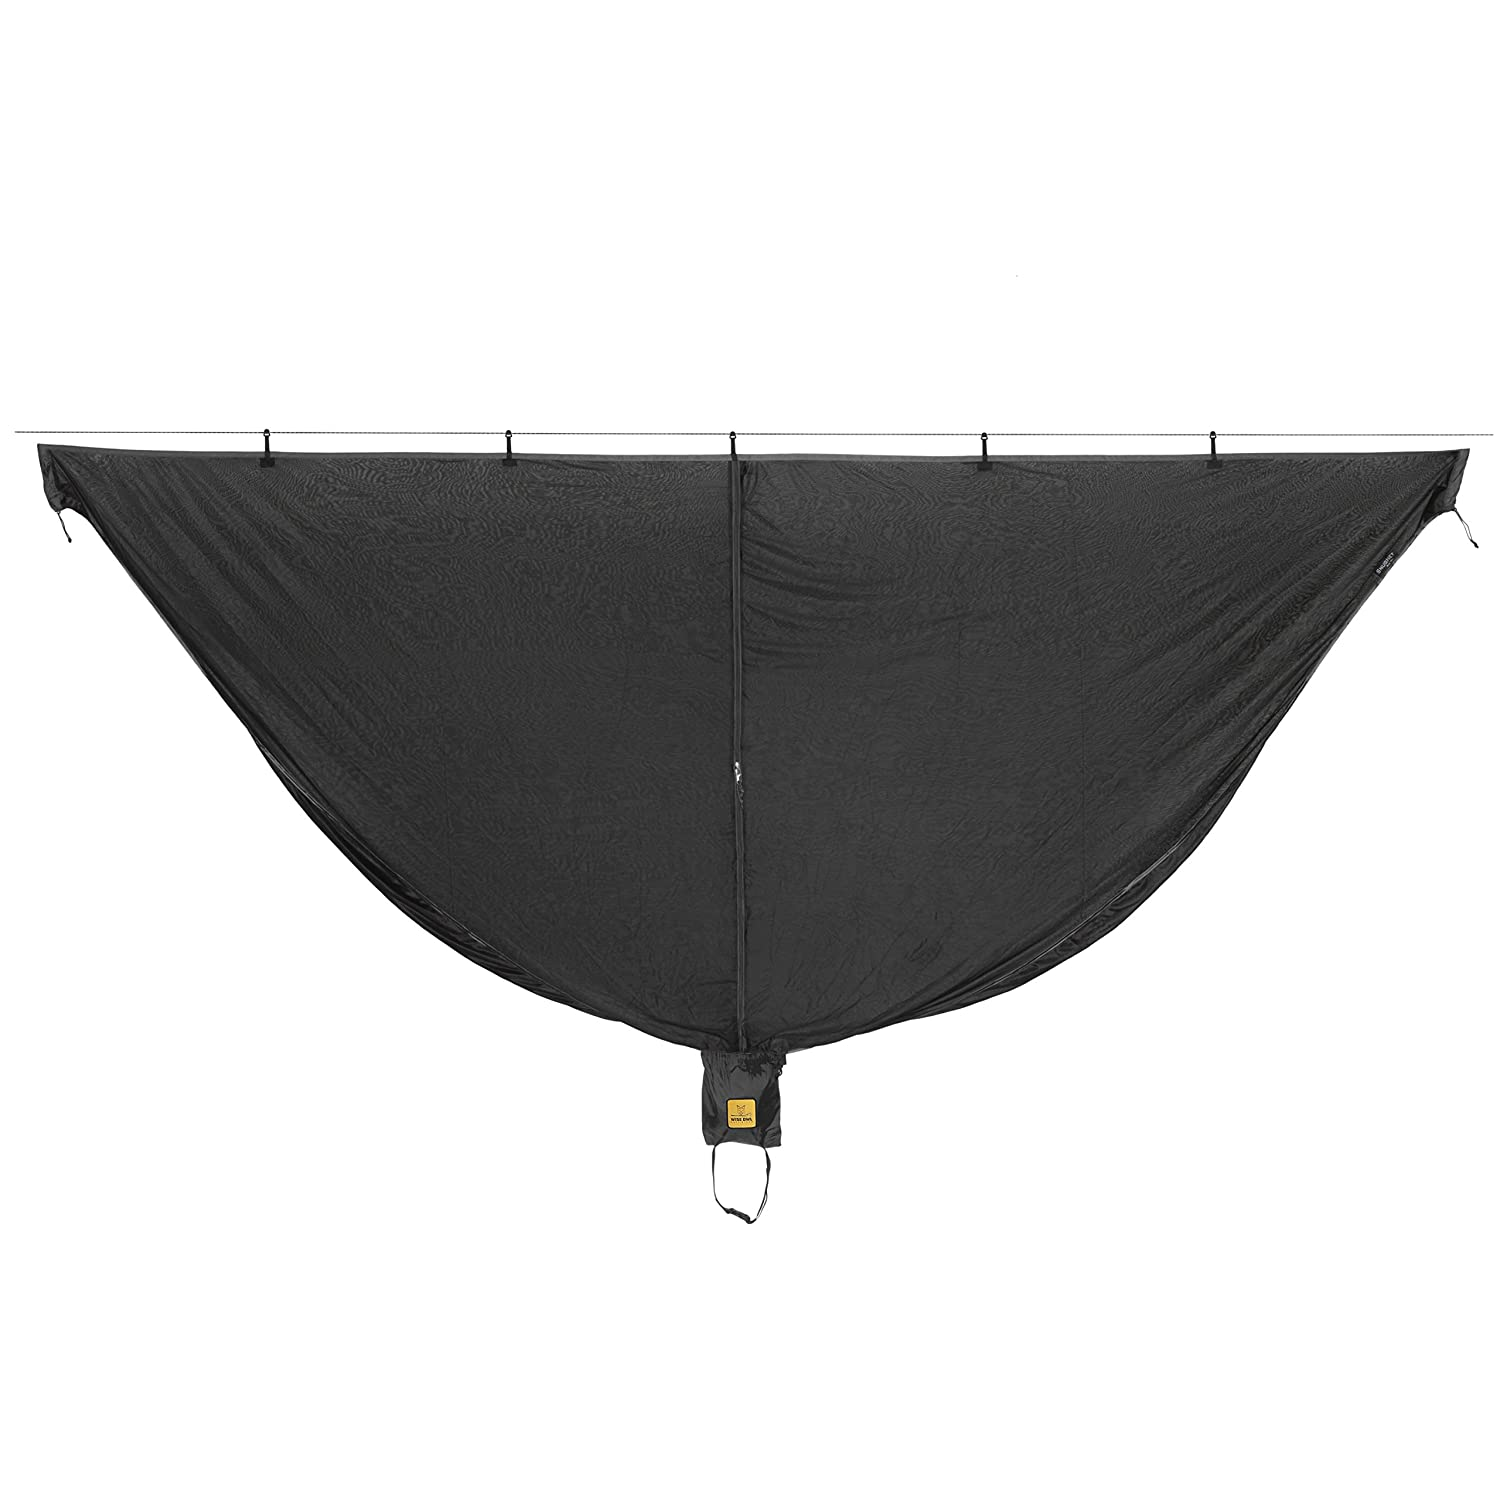 com base dp hammock camp outfitters fishing nylon double durable for two woot home person camping parachute outdoors amazon backpacking hiking